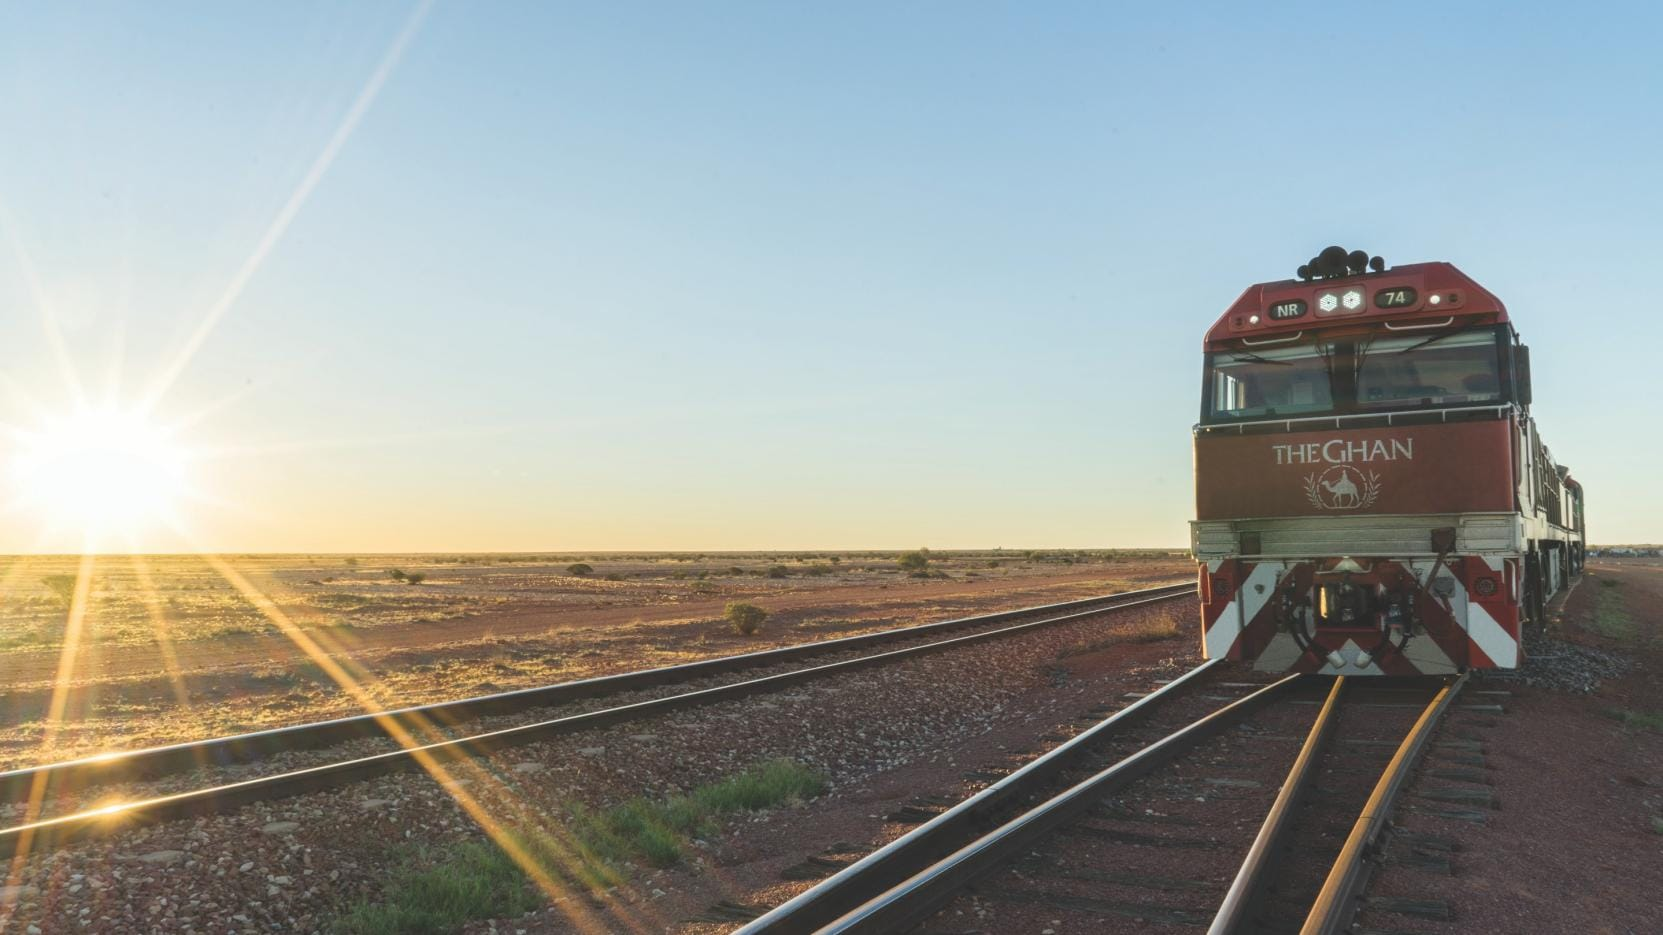 The Ghan, Adelaide, SA © Great Southern Rail